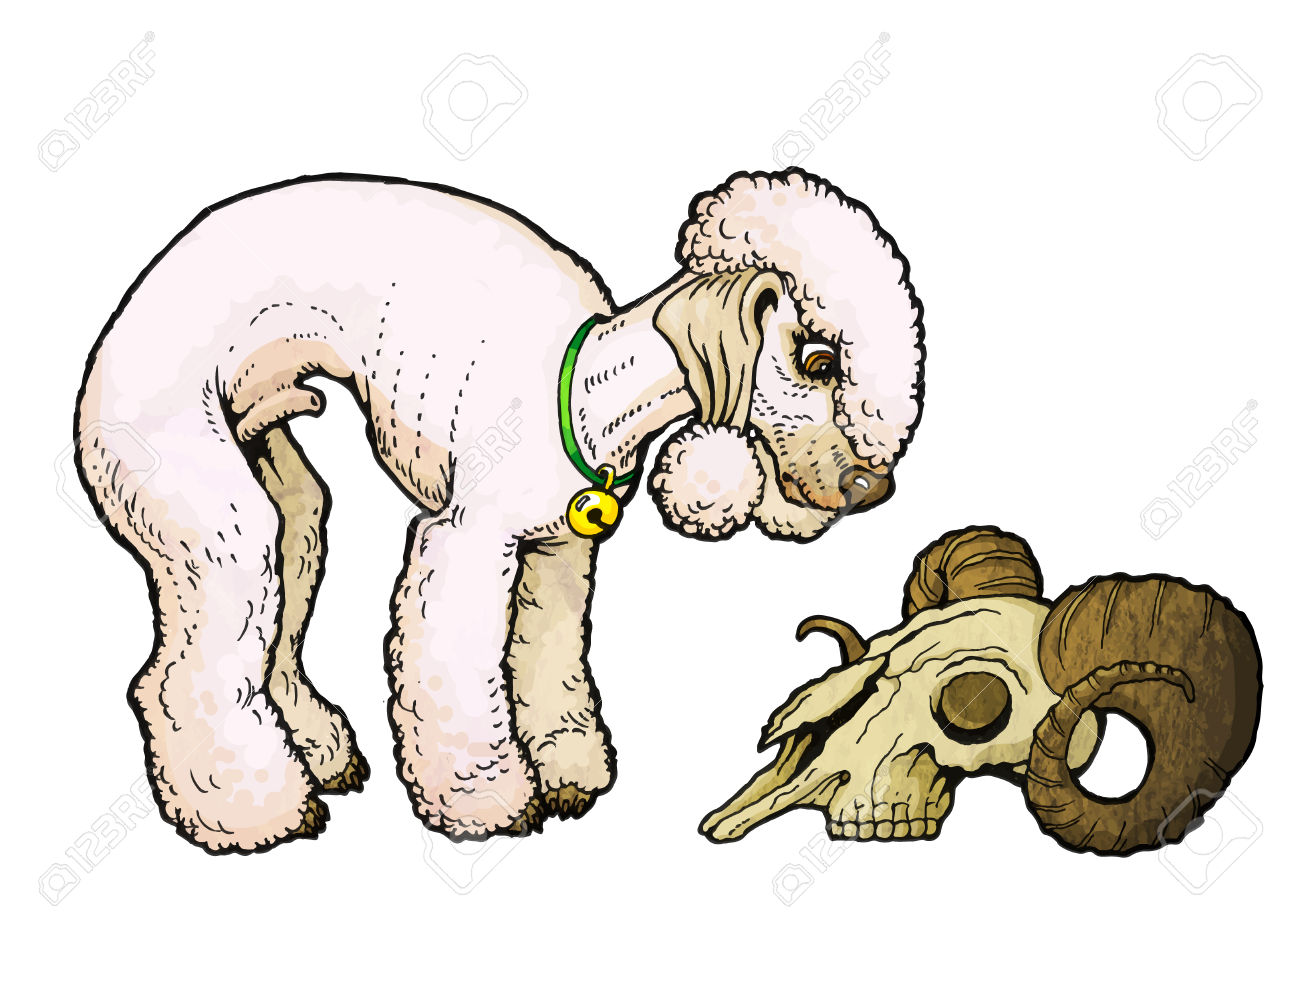 Bedlington Terrier Looks At A Sheep Skull. From A Series Of Images.